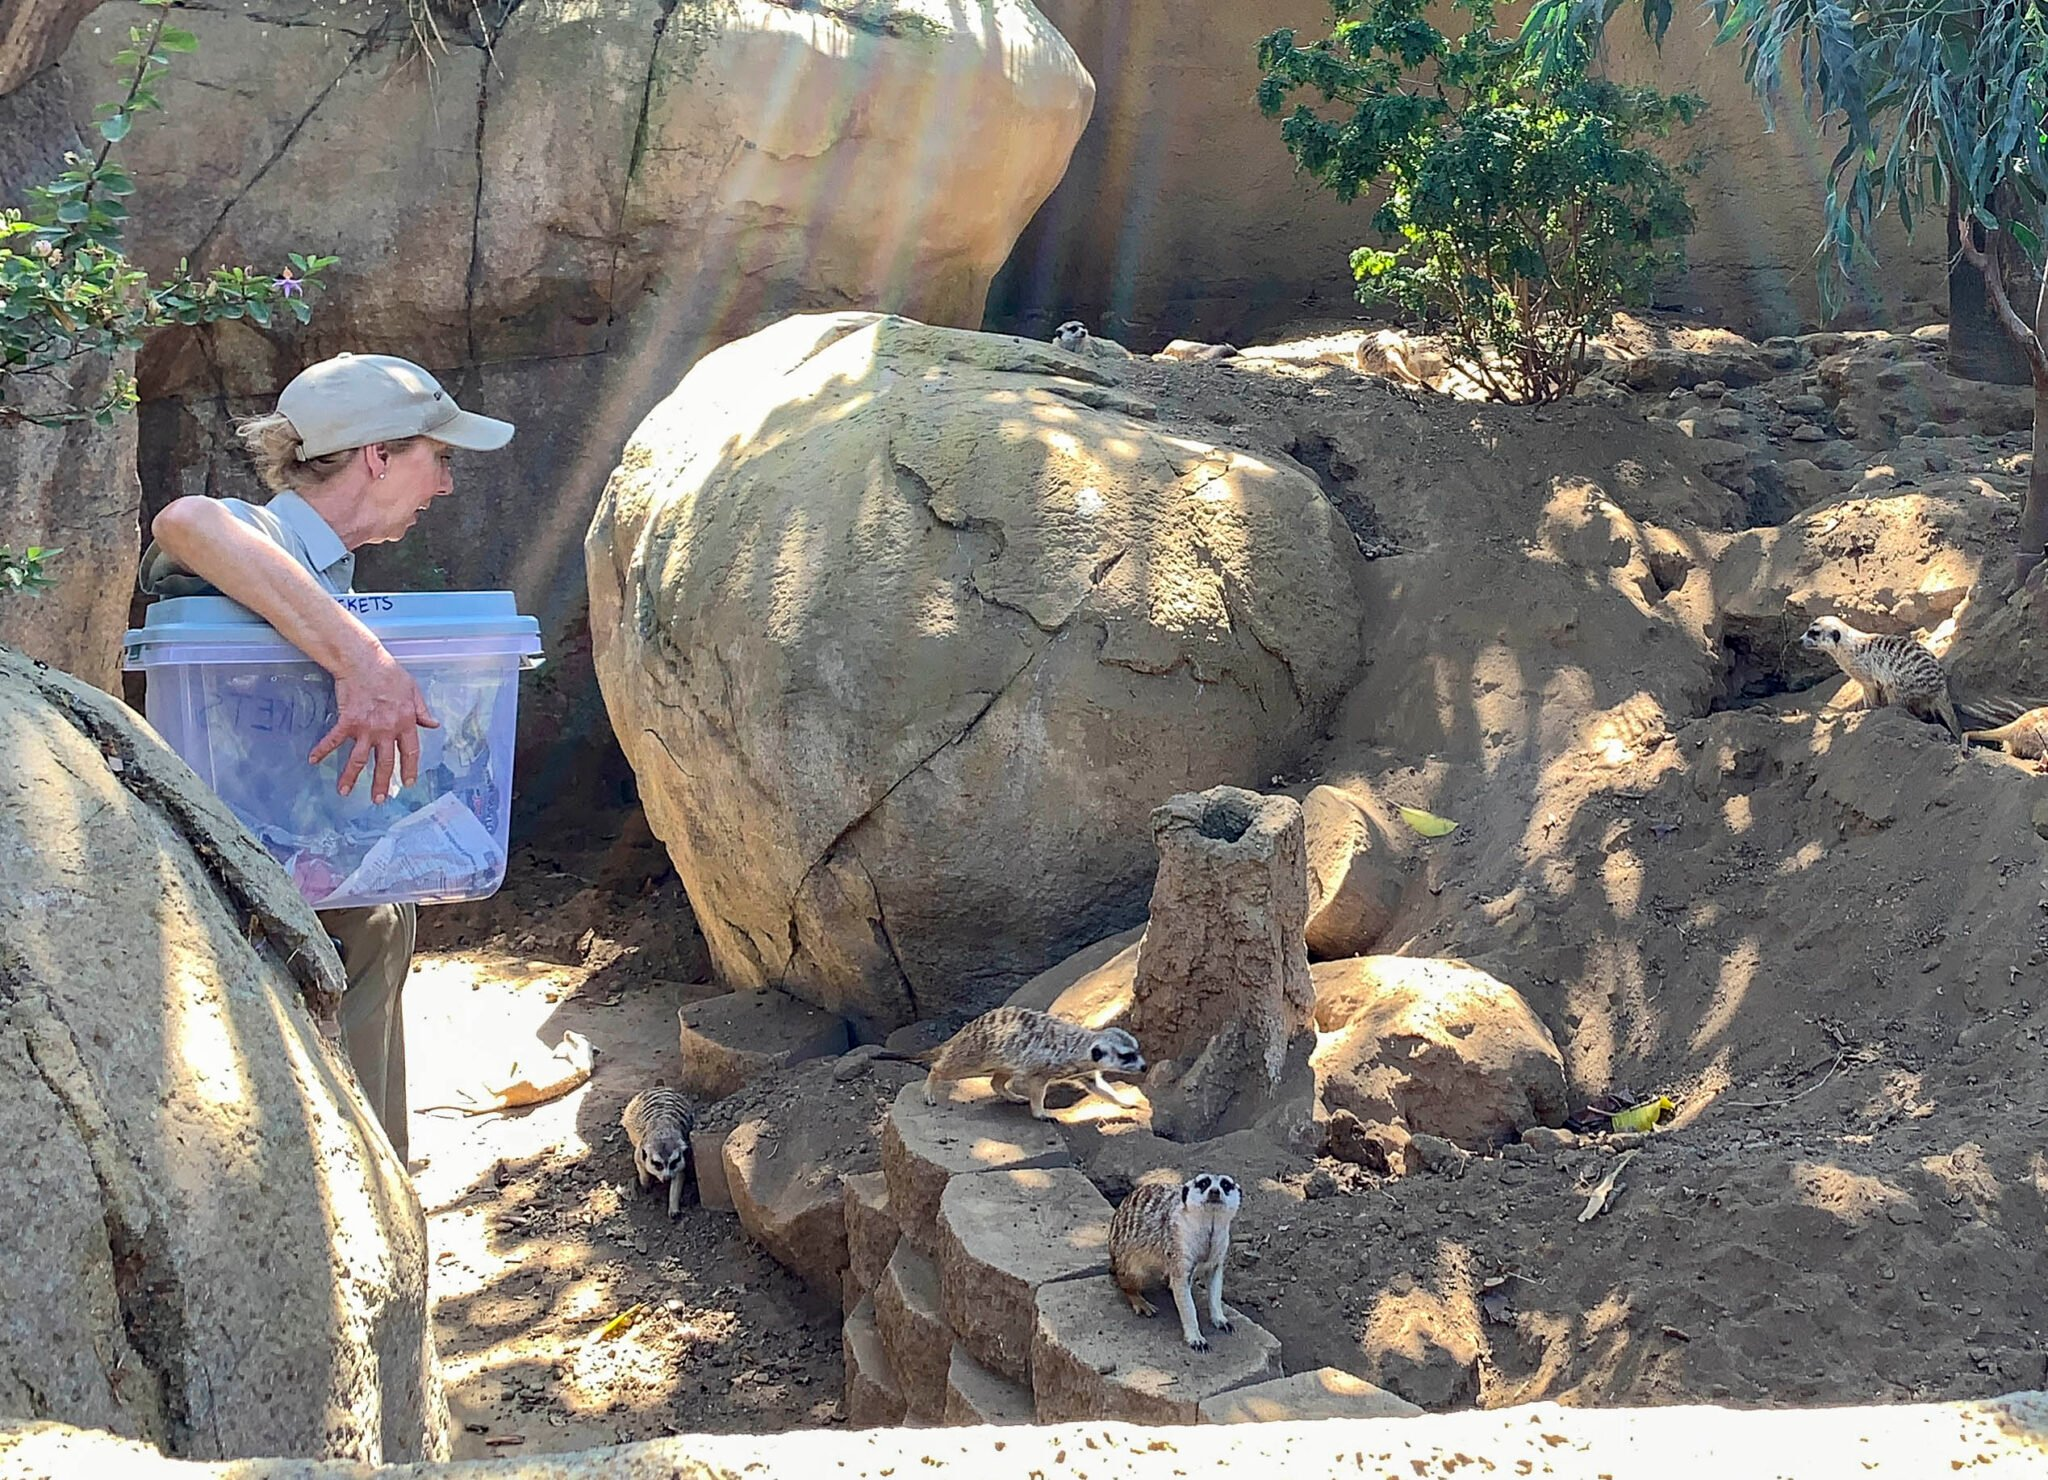 A meerkat keeper at San Diego Zoo holds a tub of food and answers questions about their care.